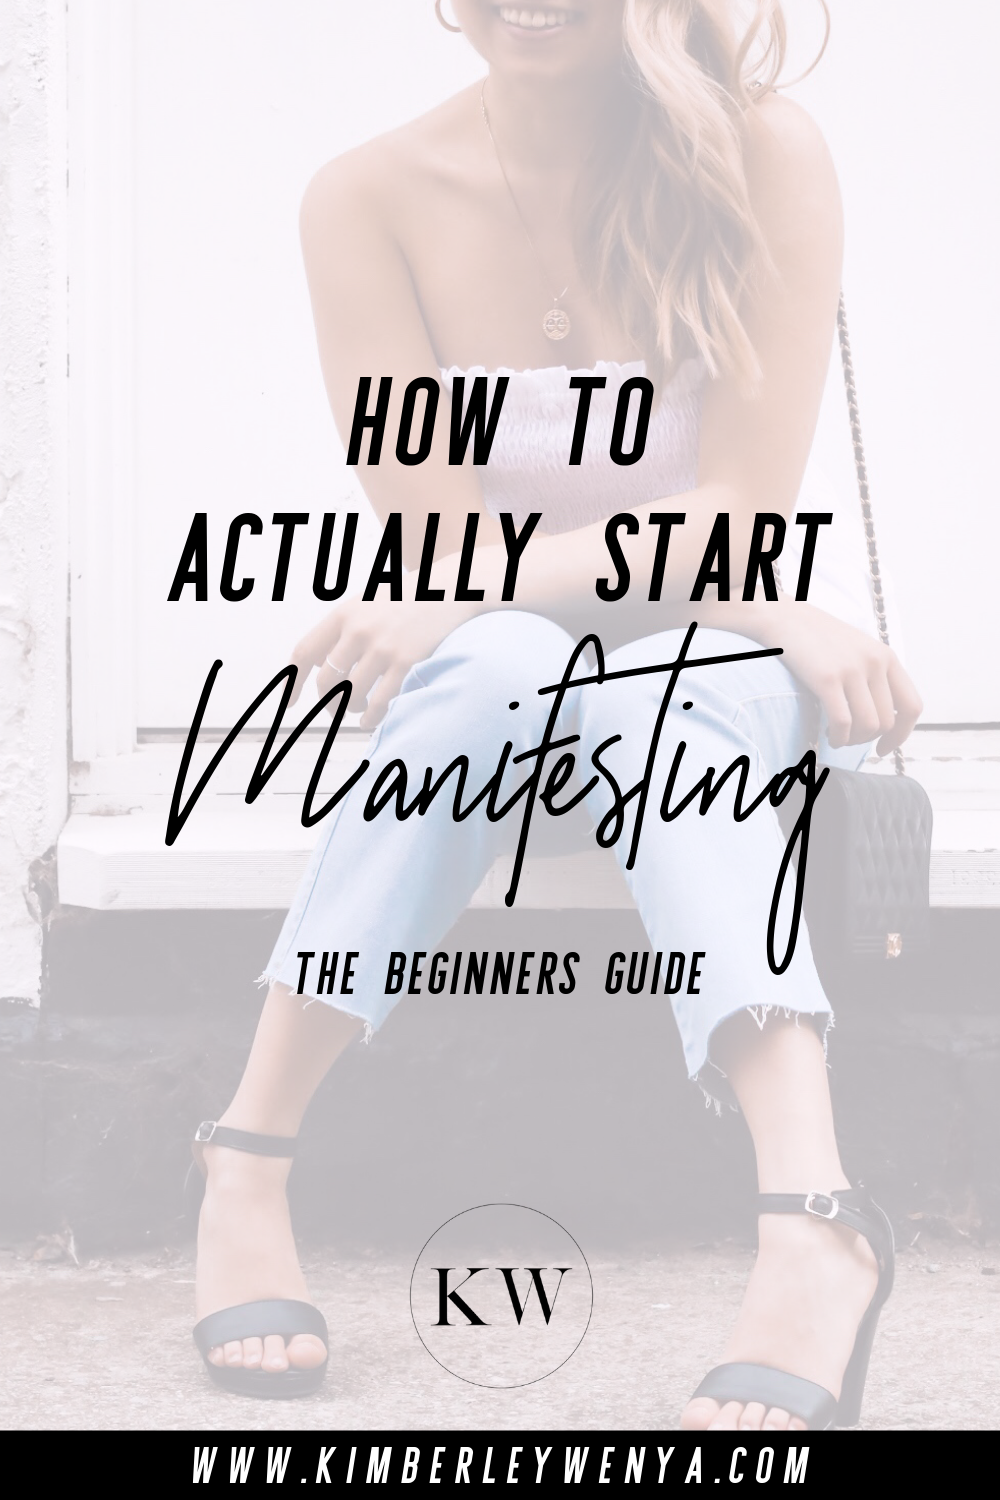 how-to-start-manifesting-the-beginners-guide.jpg